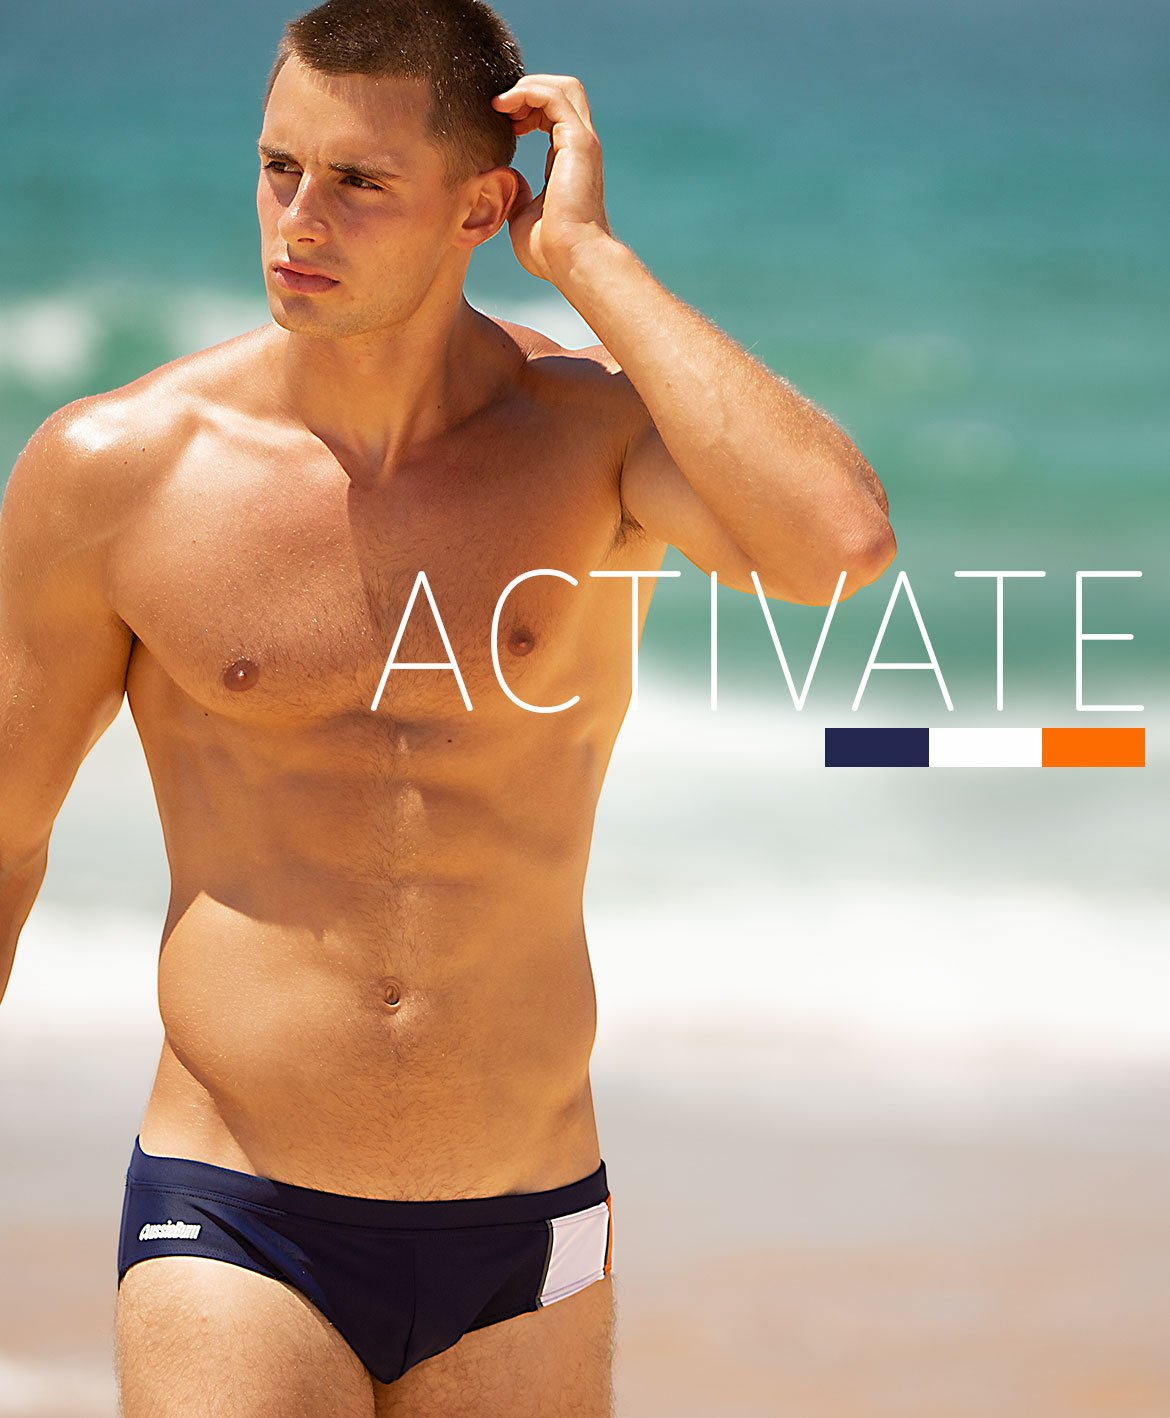 Activate Navy Homepage Image